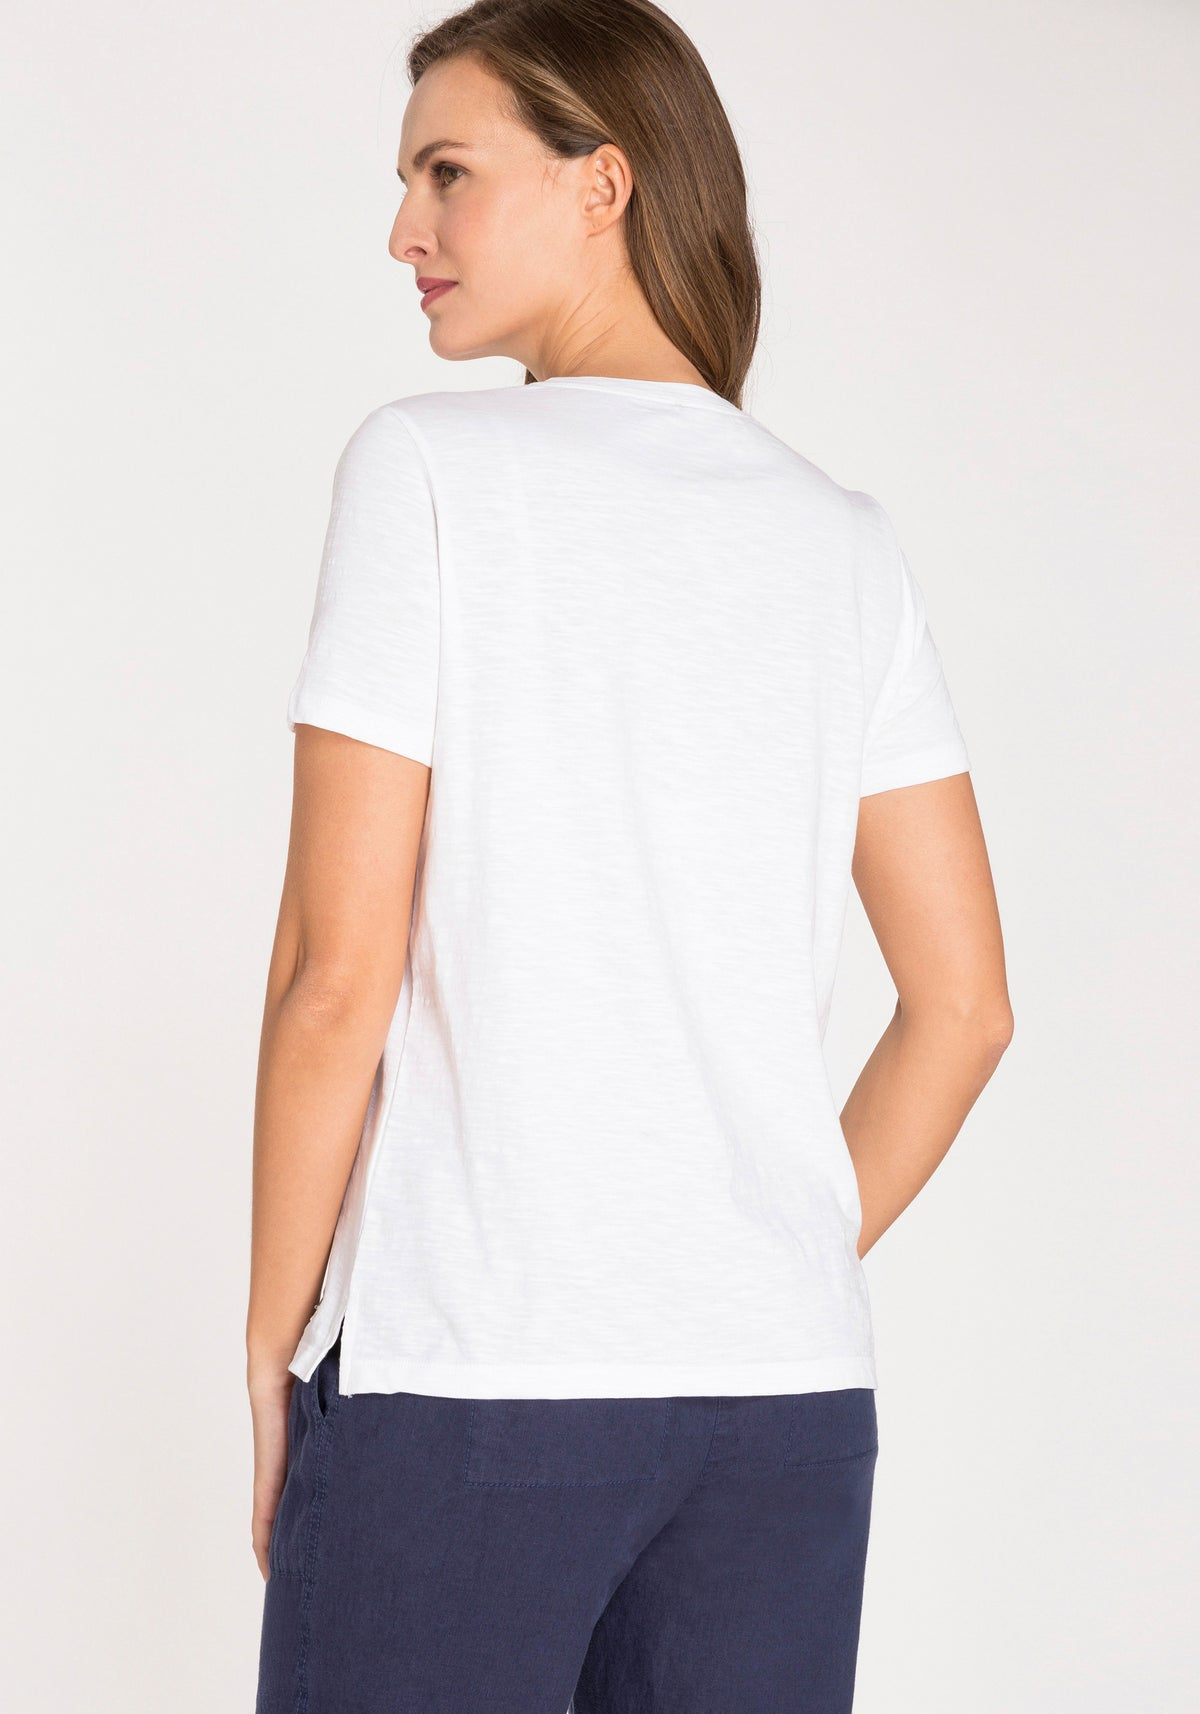 100% Cotton Short Sleeve T-Shirt with Eyelet Trim